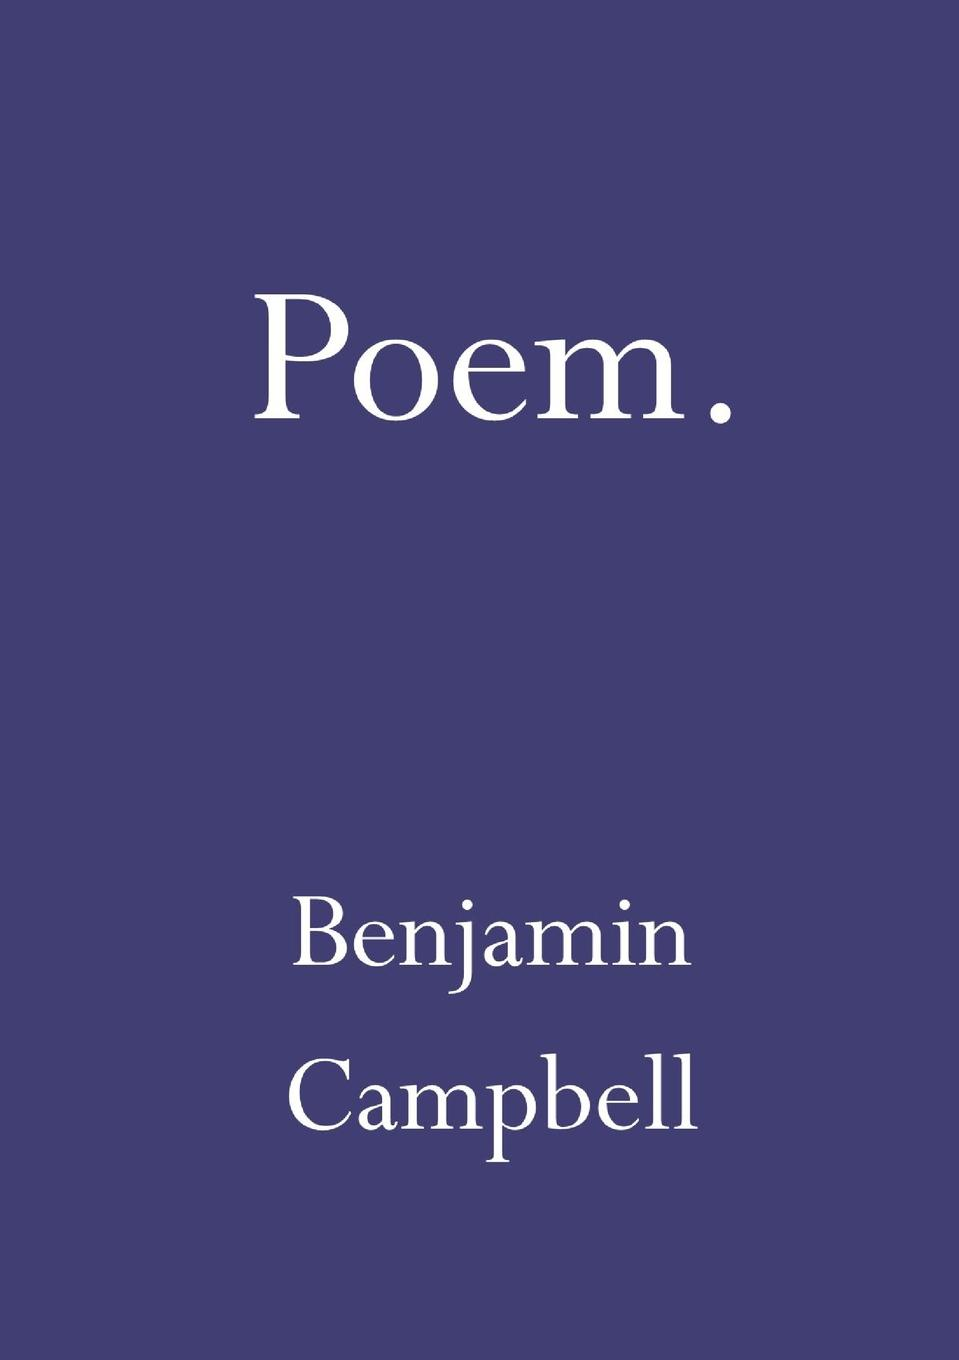 Benjamin Campbell Poem do chong poep sa cold heart thawing the zen poetry of do chong an anthology of poetry about living in the modern world